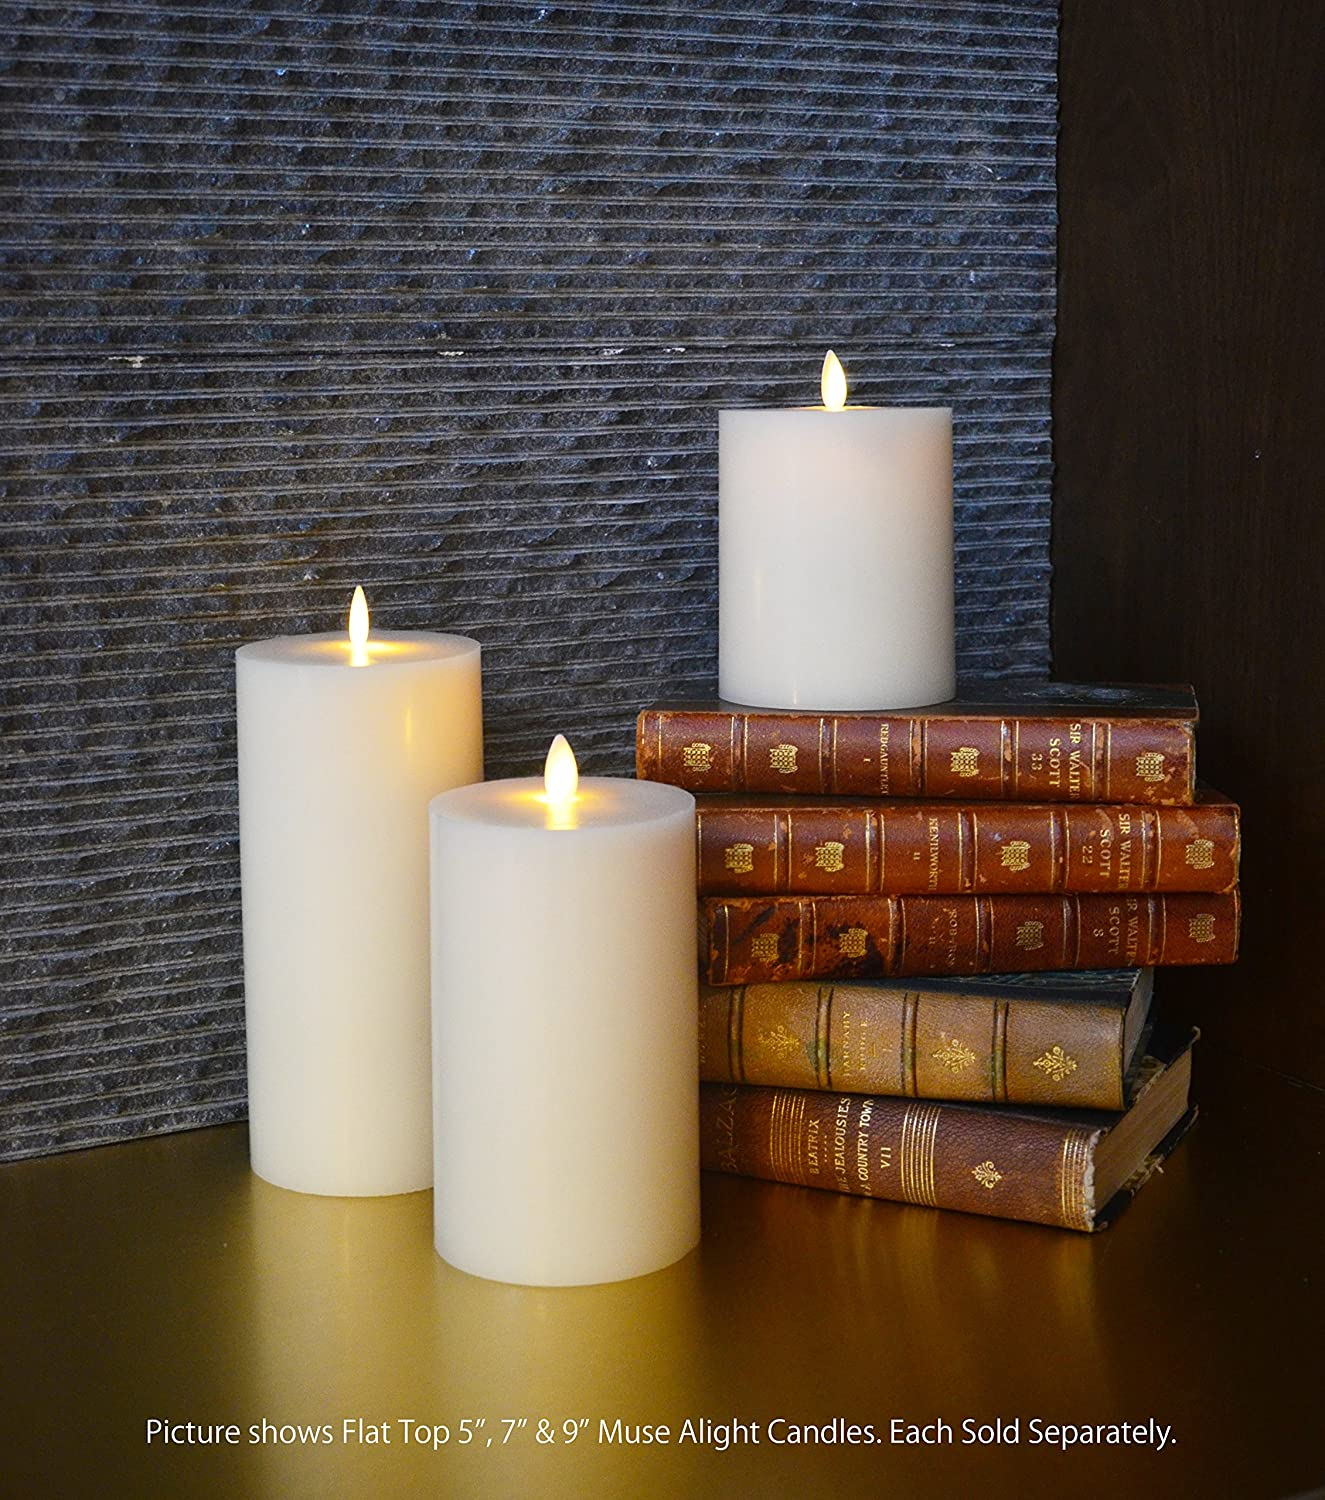 Vanilla Scented Vanilla Scented Remote Control Included Muse Alight 9 Blow On /& Off Classic Flameless Electronic Wax Pillar Candle By Battery Operated with Timer Feature Remote Control Included Ivory 3.5x9 Muse Alight Inc. MA-BC-003 3.5x9, Ivory